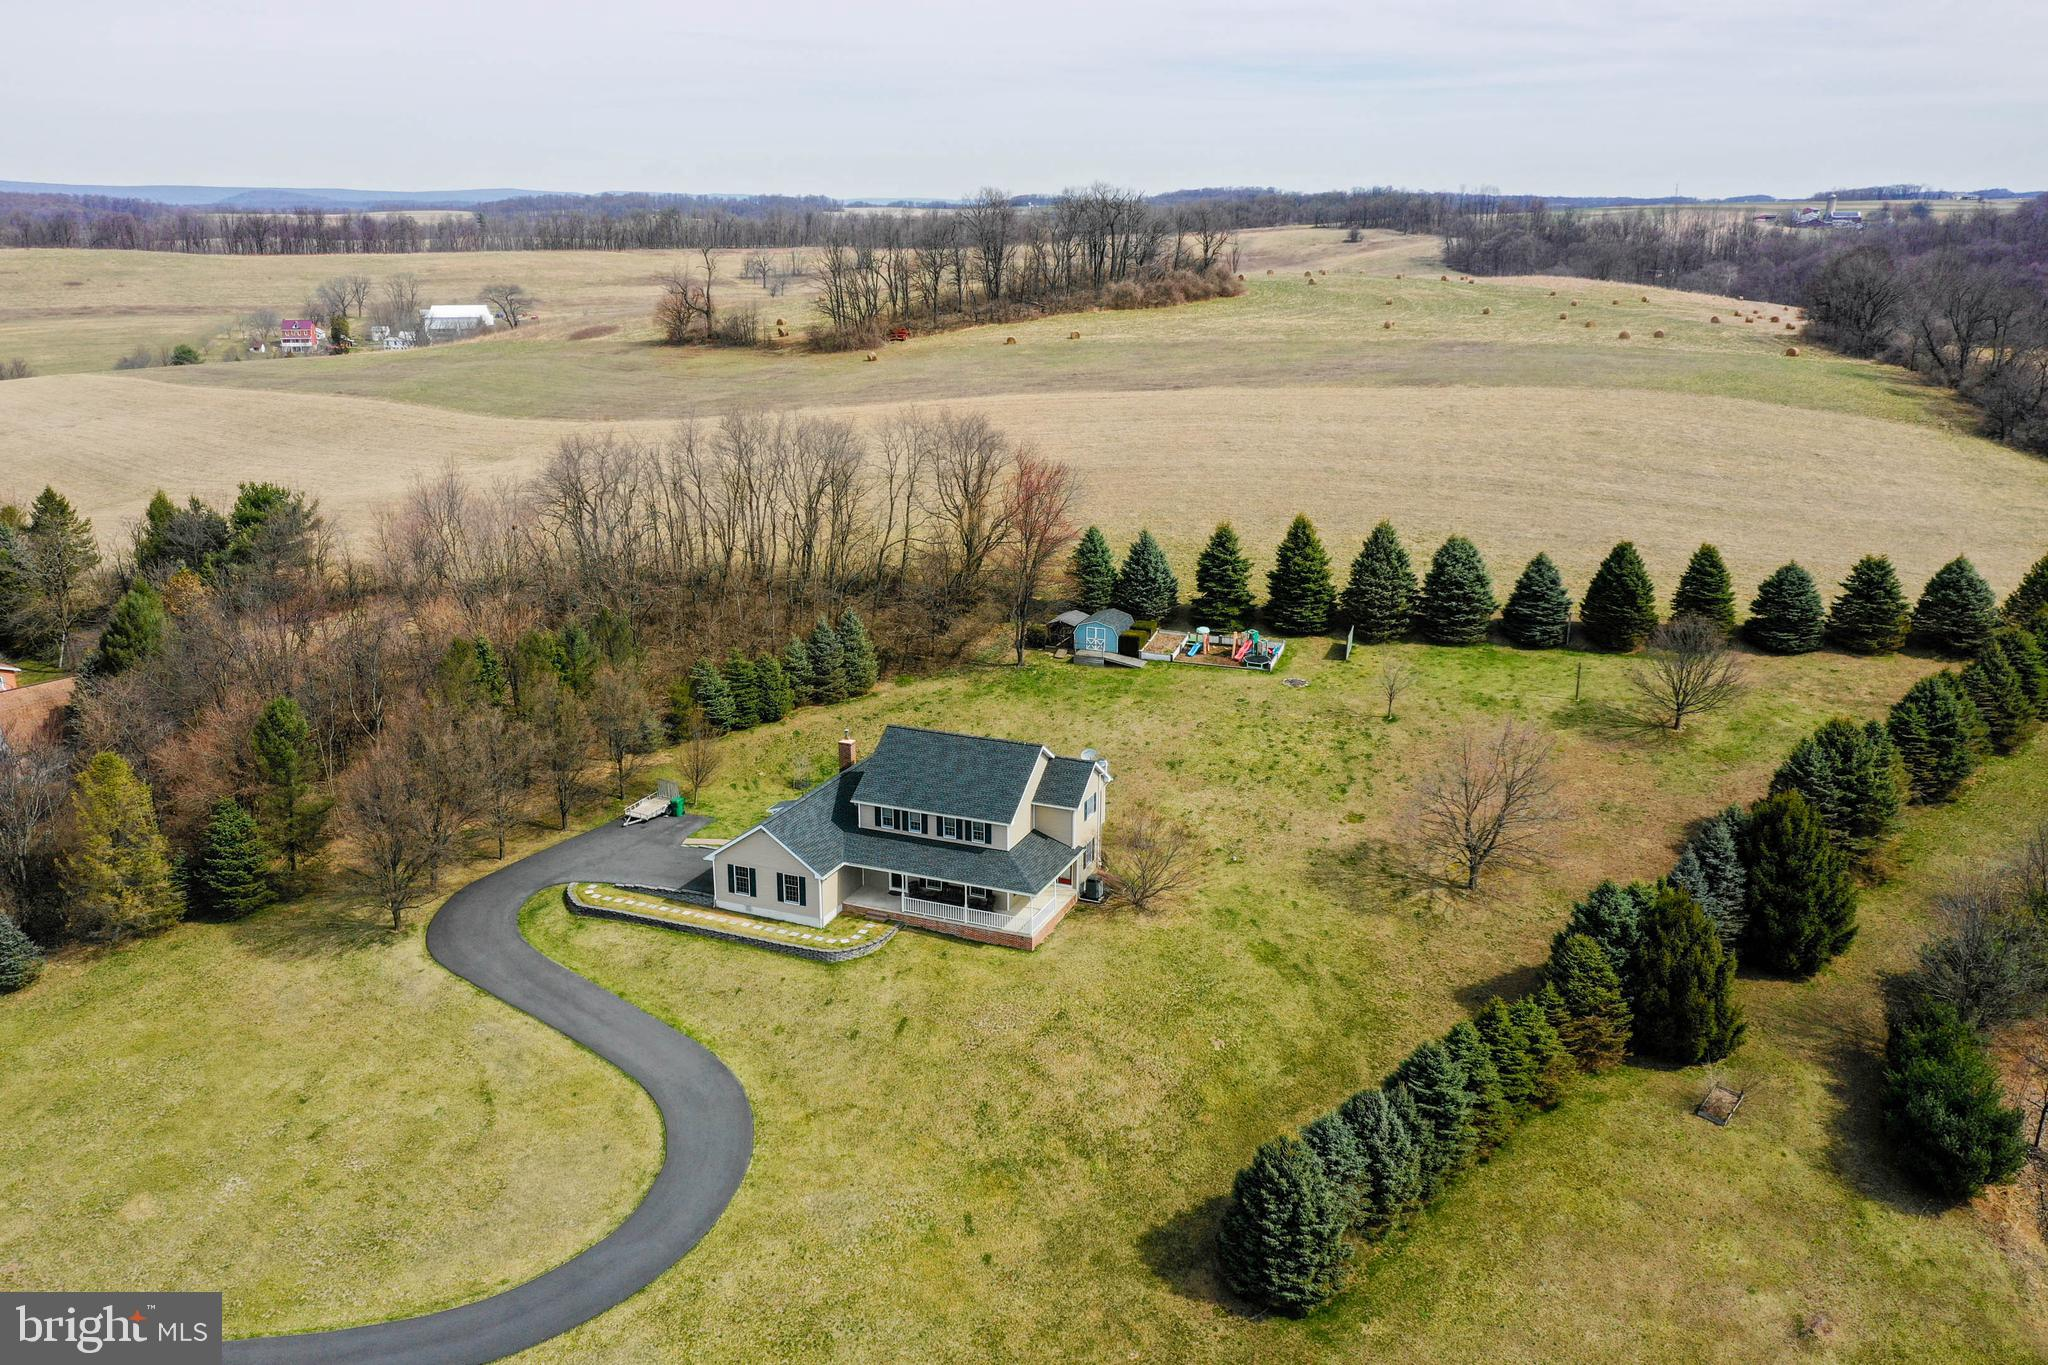 Residential for sale in KUTZTOWN, Pennsylvania, PABK339002 on